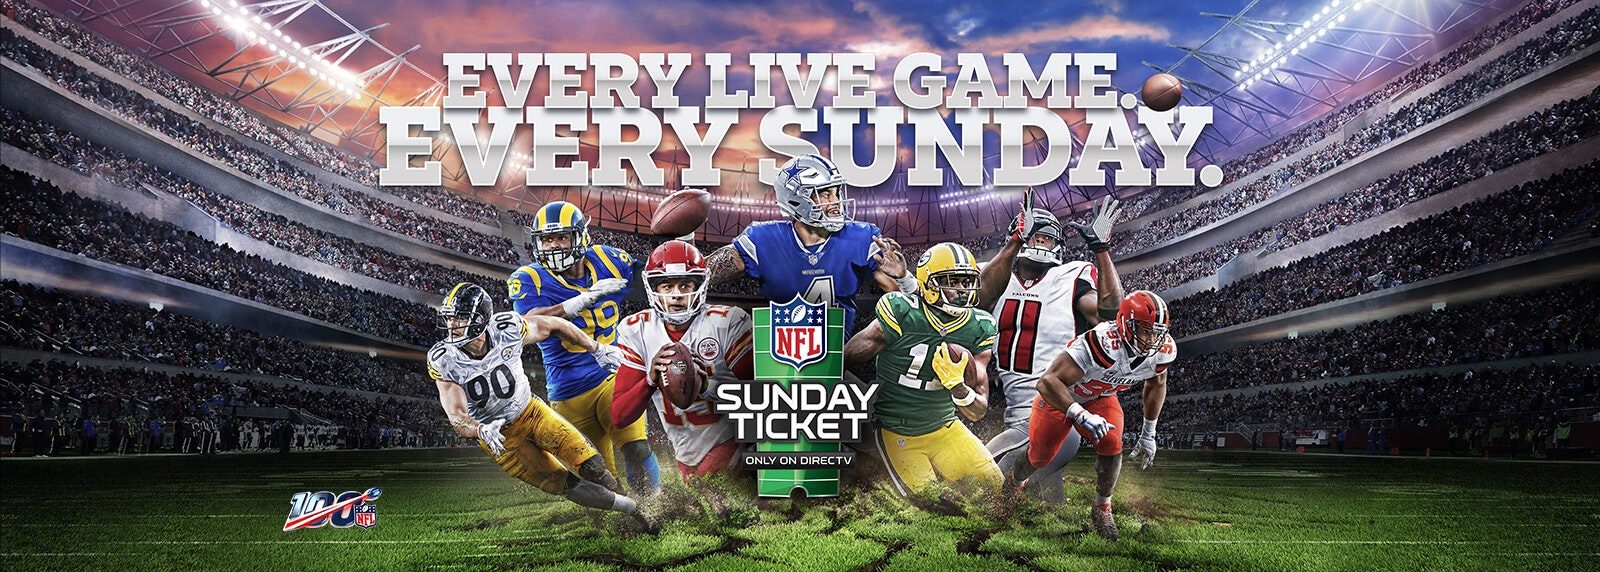 watch vikings vs lions live stream nfl sunday ticket